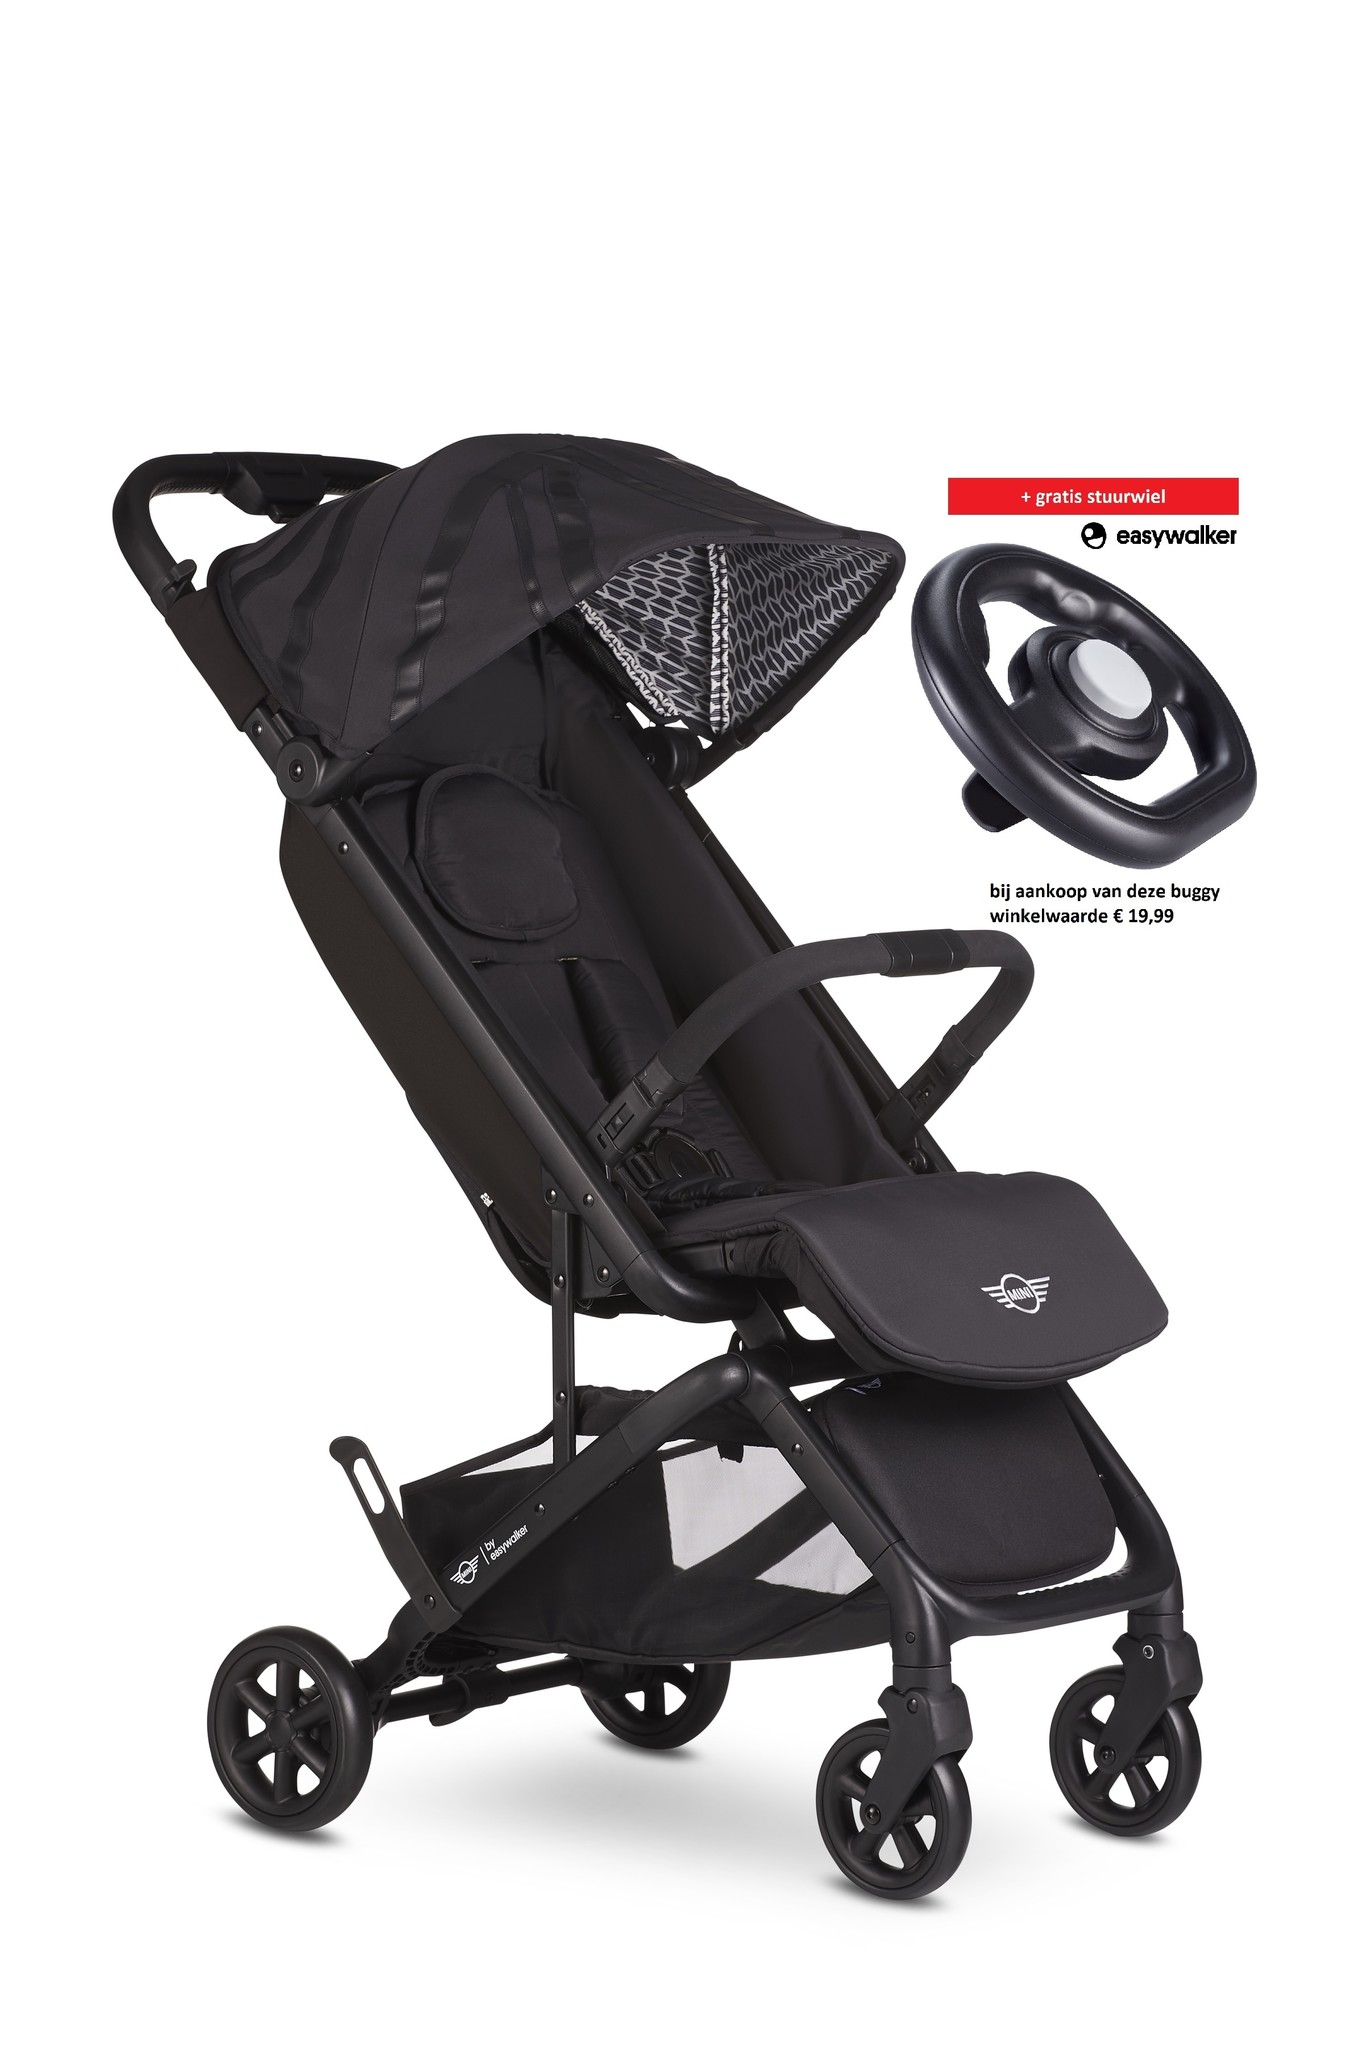 Easywalker MINI by Easywalker Buggy GO Oxford Black nu met gratis stuurwiel!